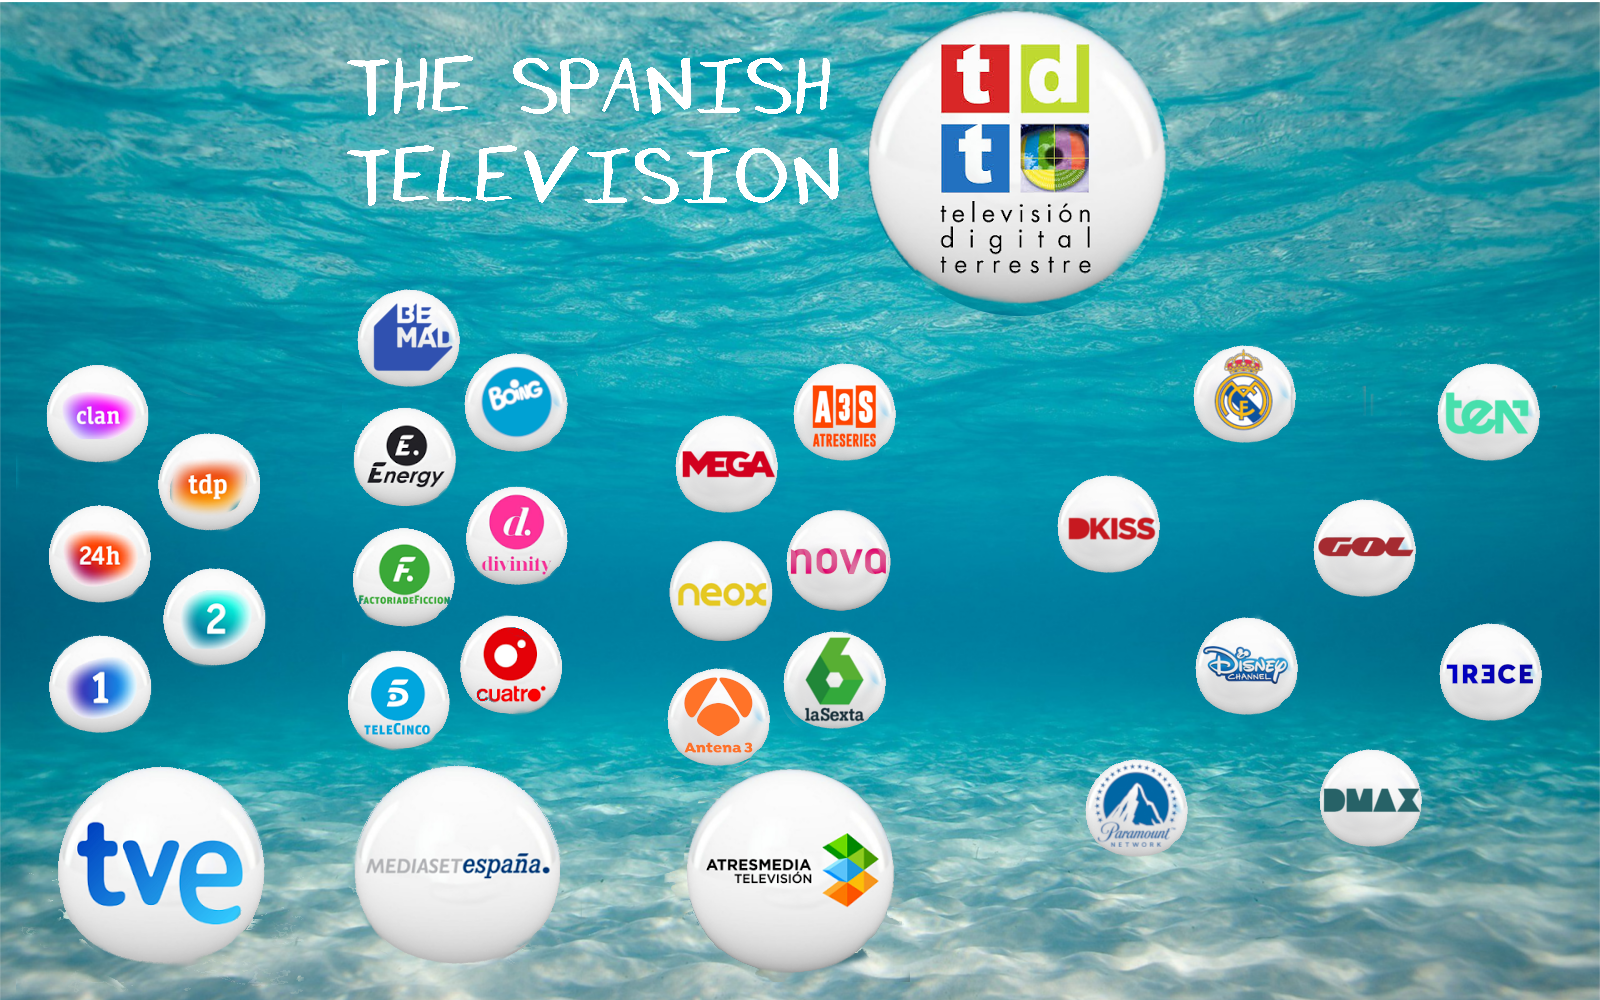 The Spanish Television: August 2013